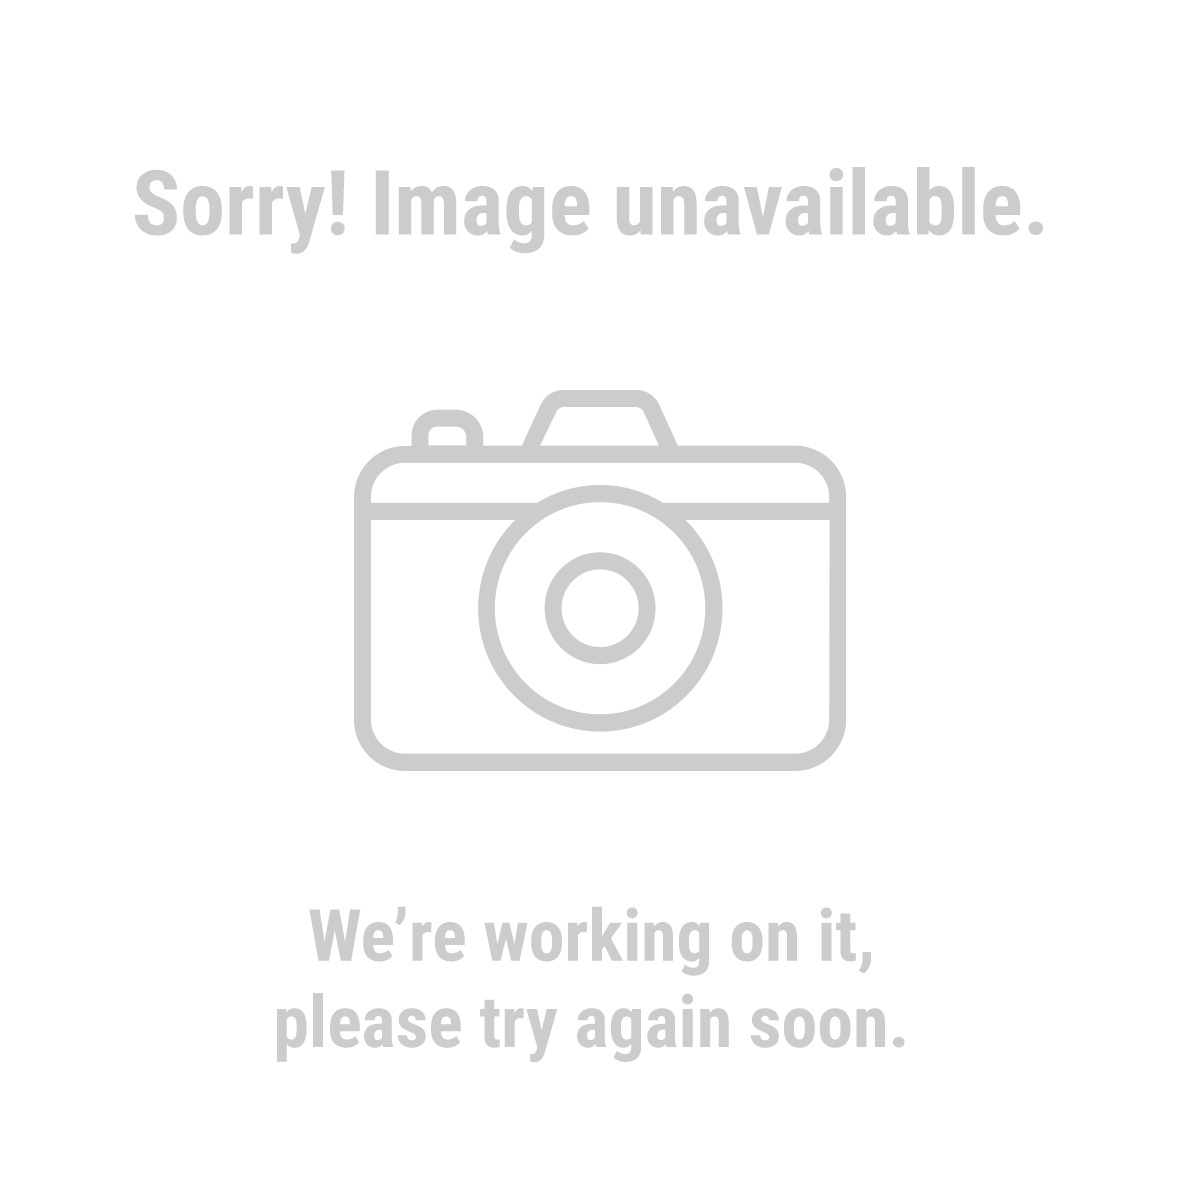 WD-40® 62232 WD-40® Lubricant